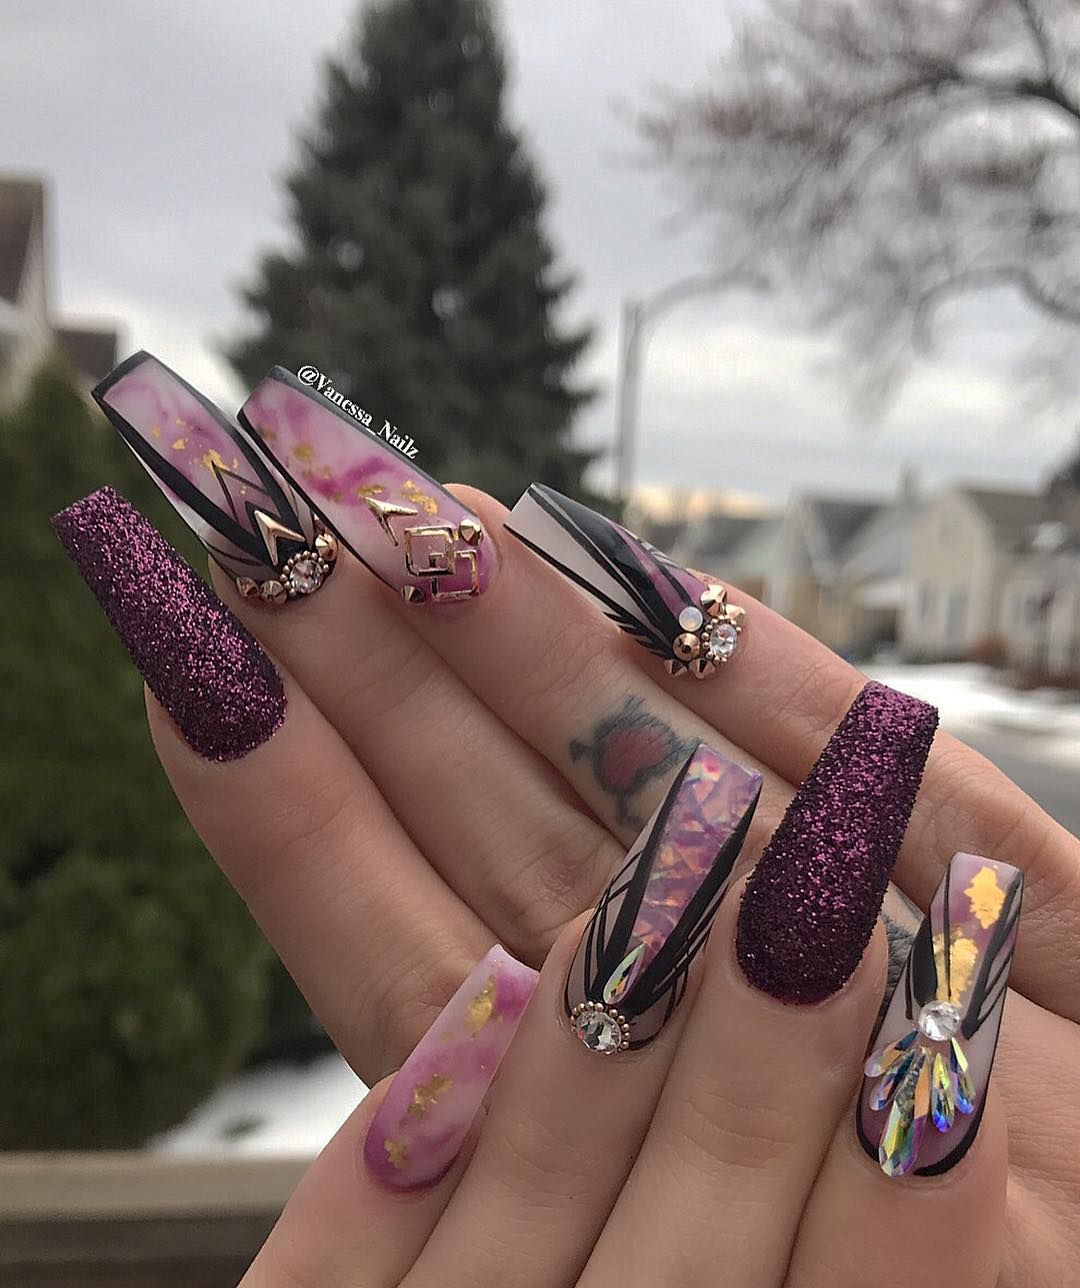 70 Most Beautiful 3d Nail Art Design Ideas For Trendy Girls: Pin By Bannessa Segundo On Nails